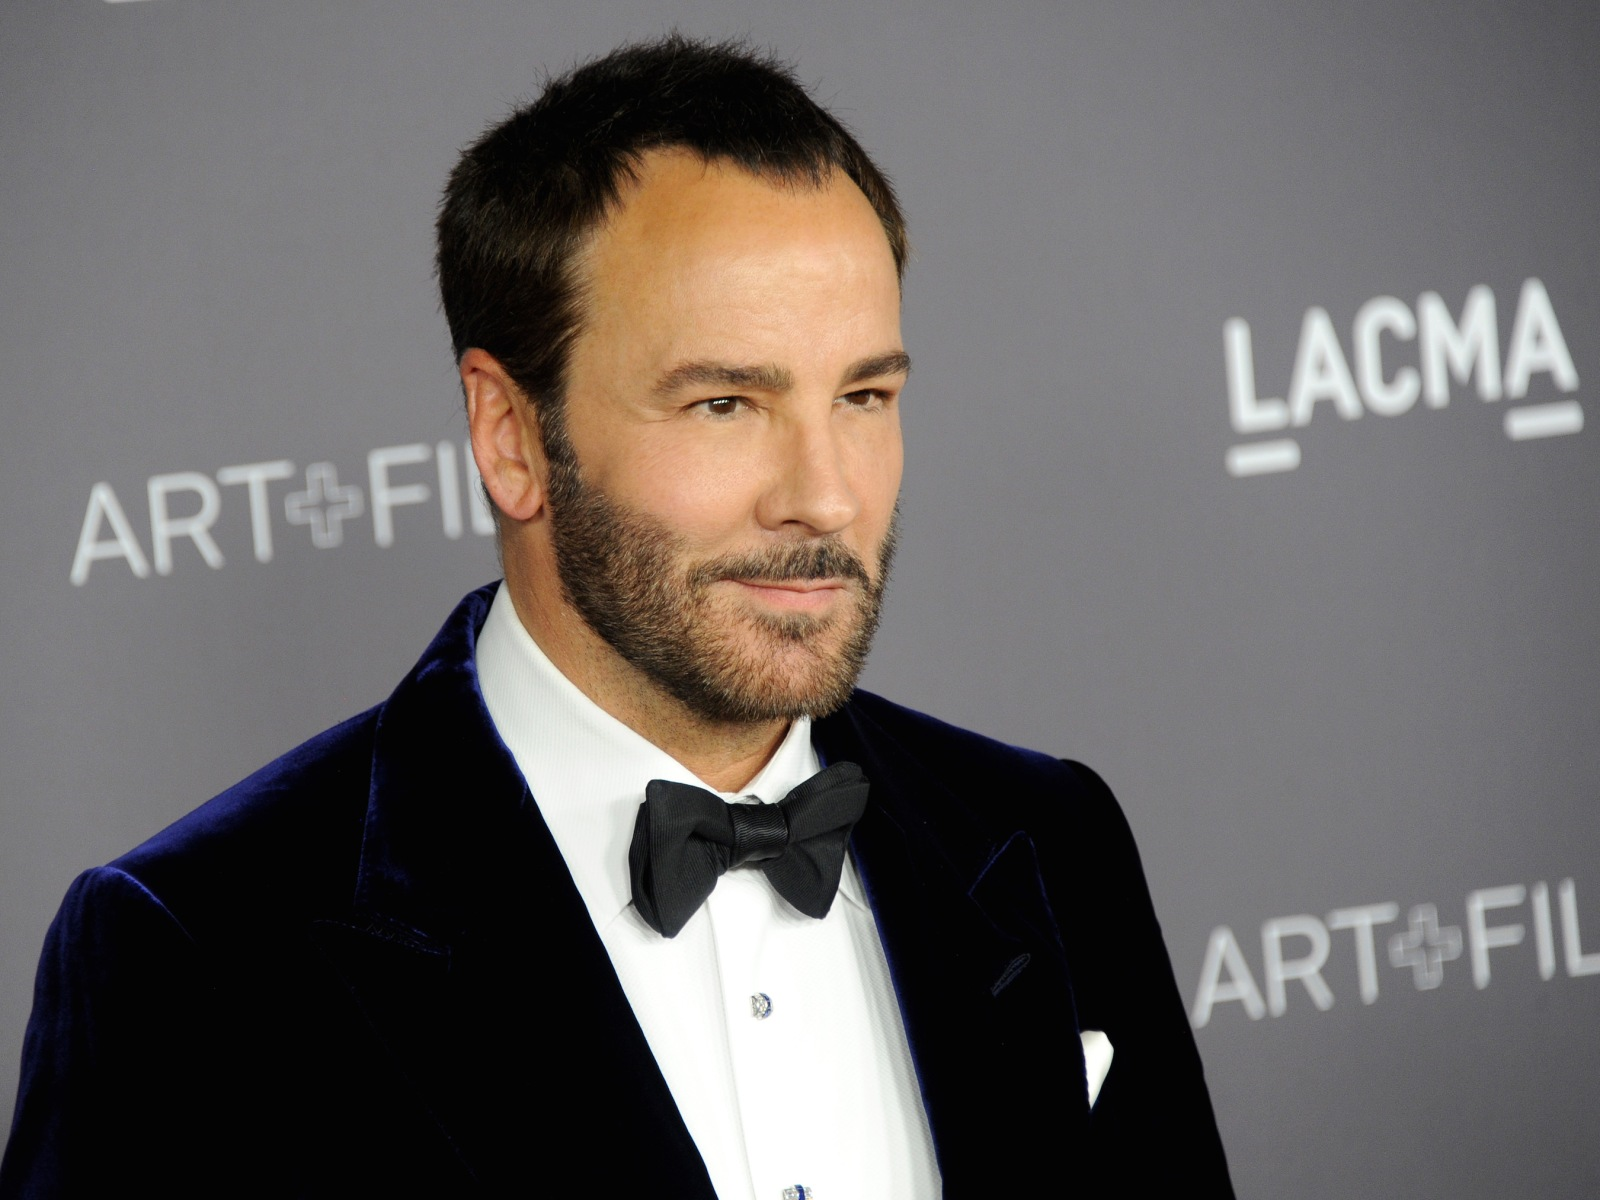 Tom Ford arrives at the 2017 LACMA Art + Film Gala honoring Mark Bradford and George Lucas at LACMA on November 4, 2017 in Los Angeles, California.  (Photo by Gregg DeGuire/WireImage)